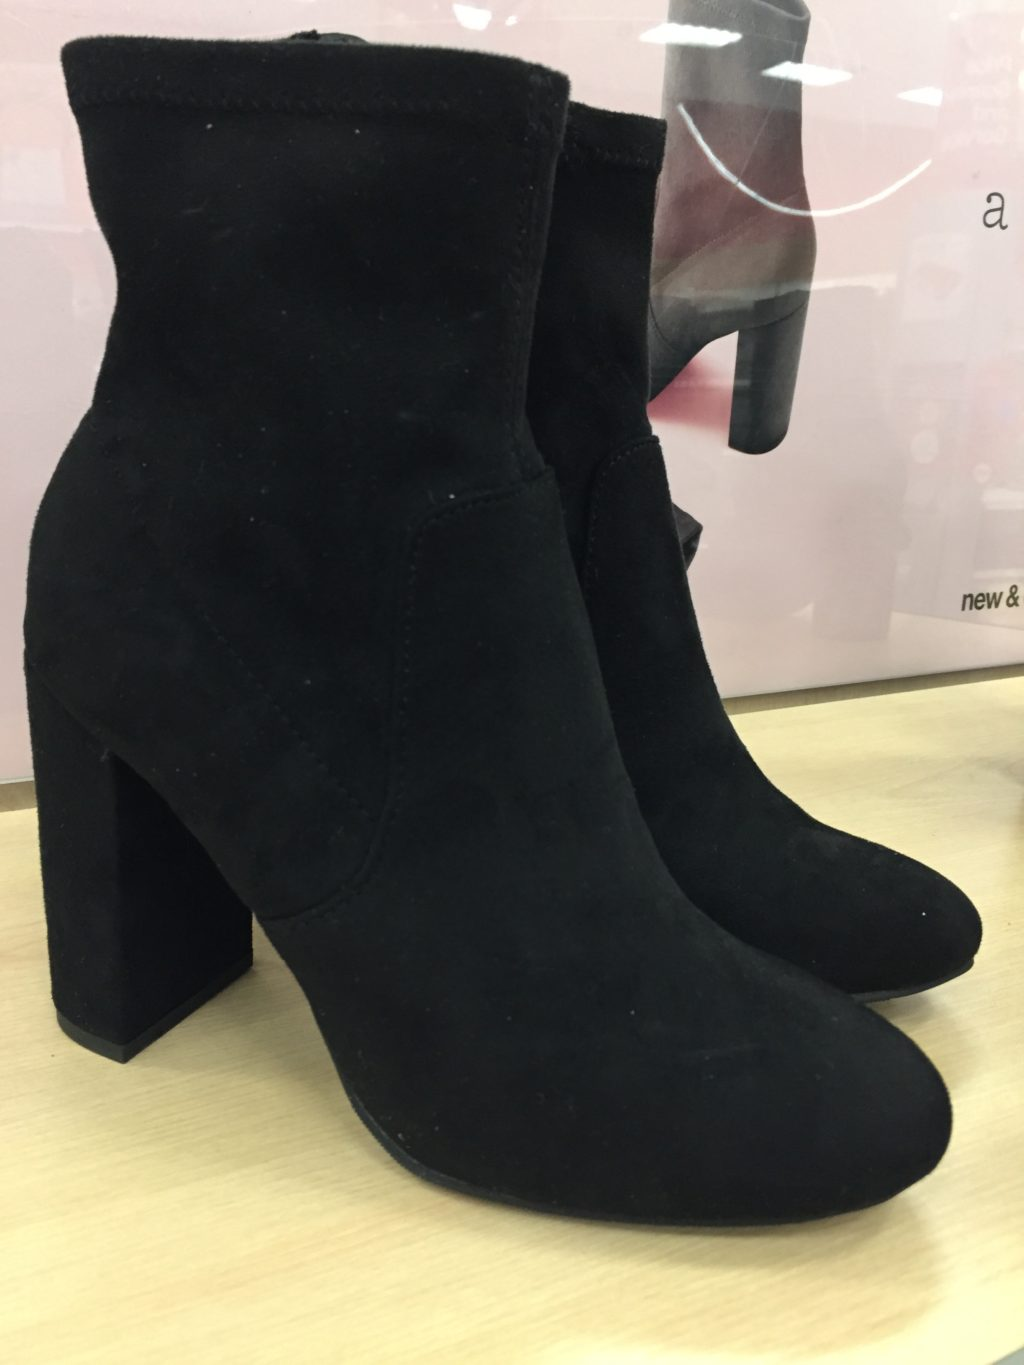 Target Tuesday Finds:  Shoe Sale!